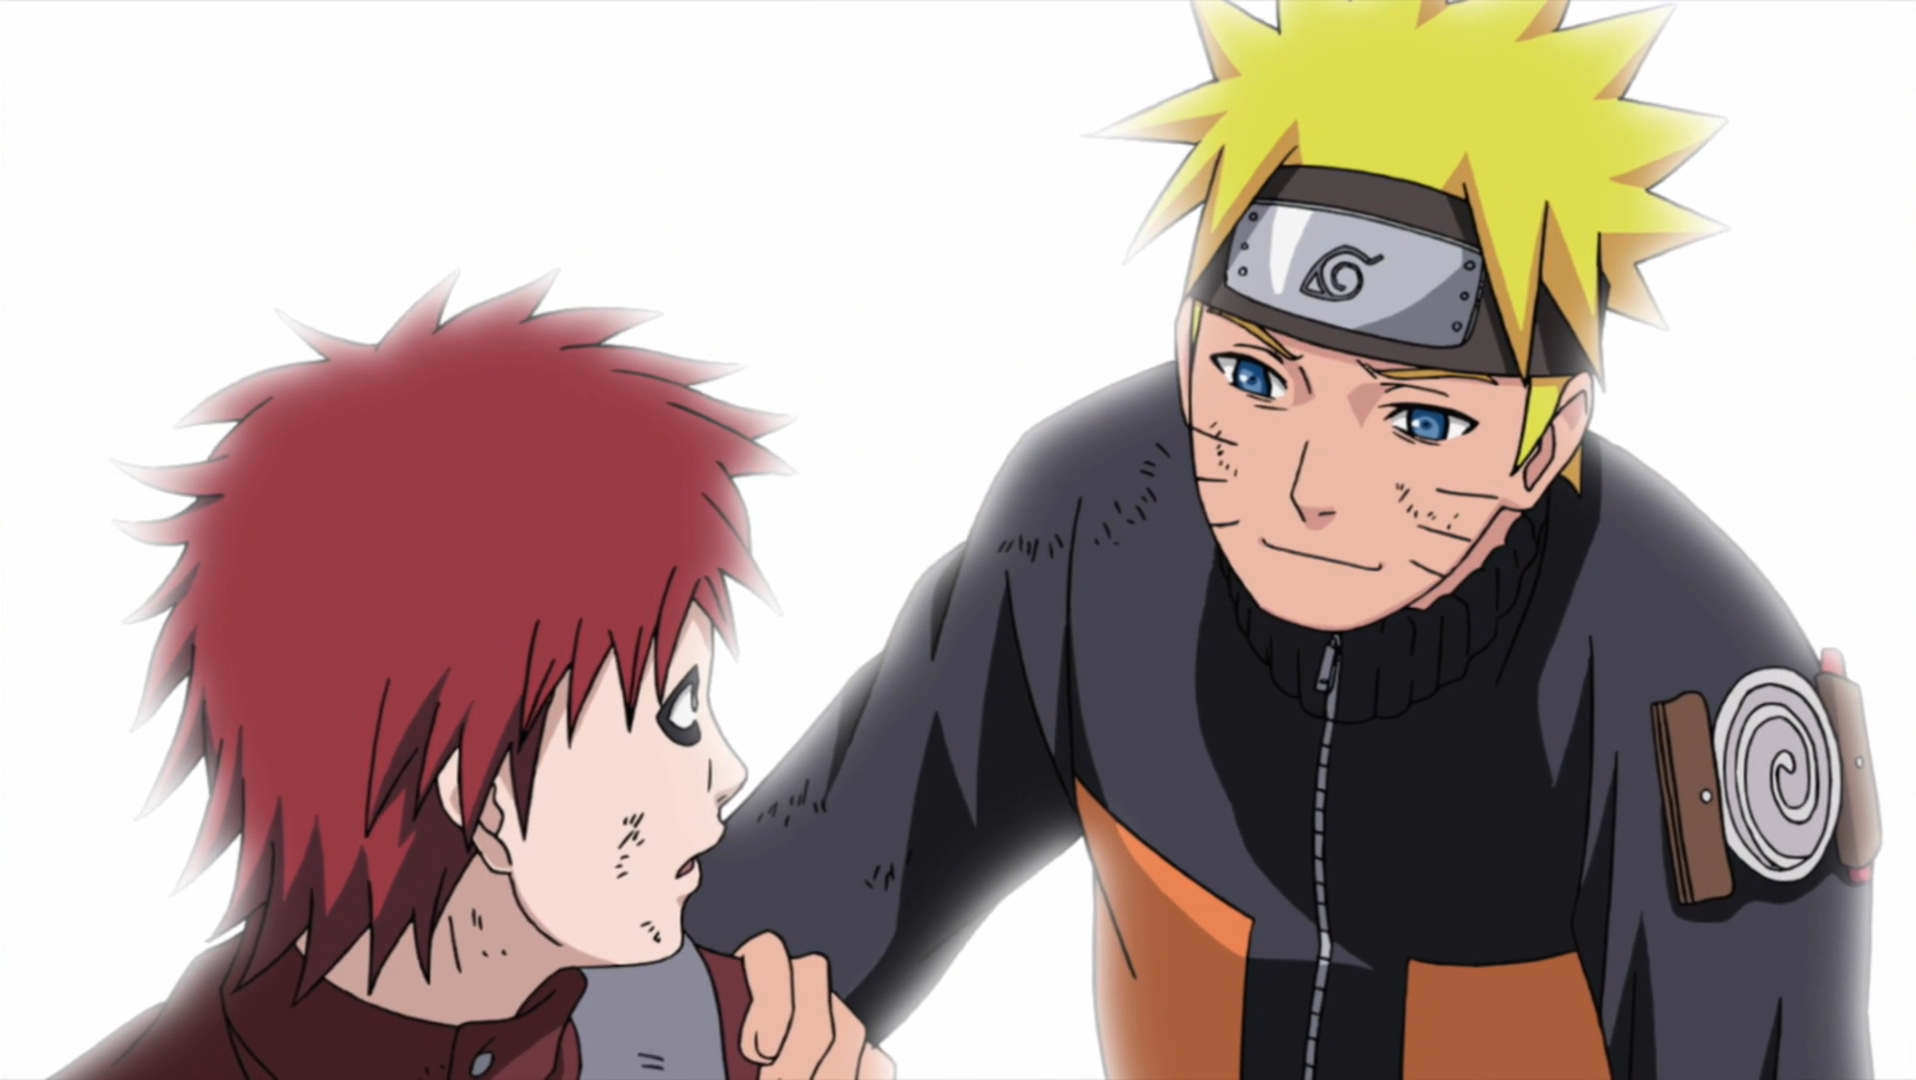 1916 x 1080 png 1032kBNaruto